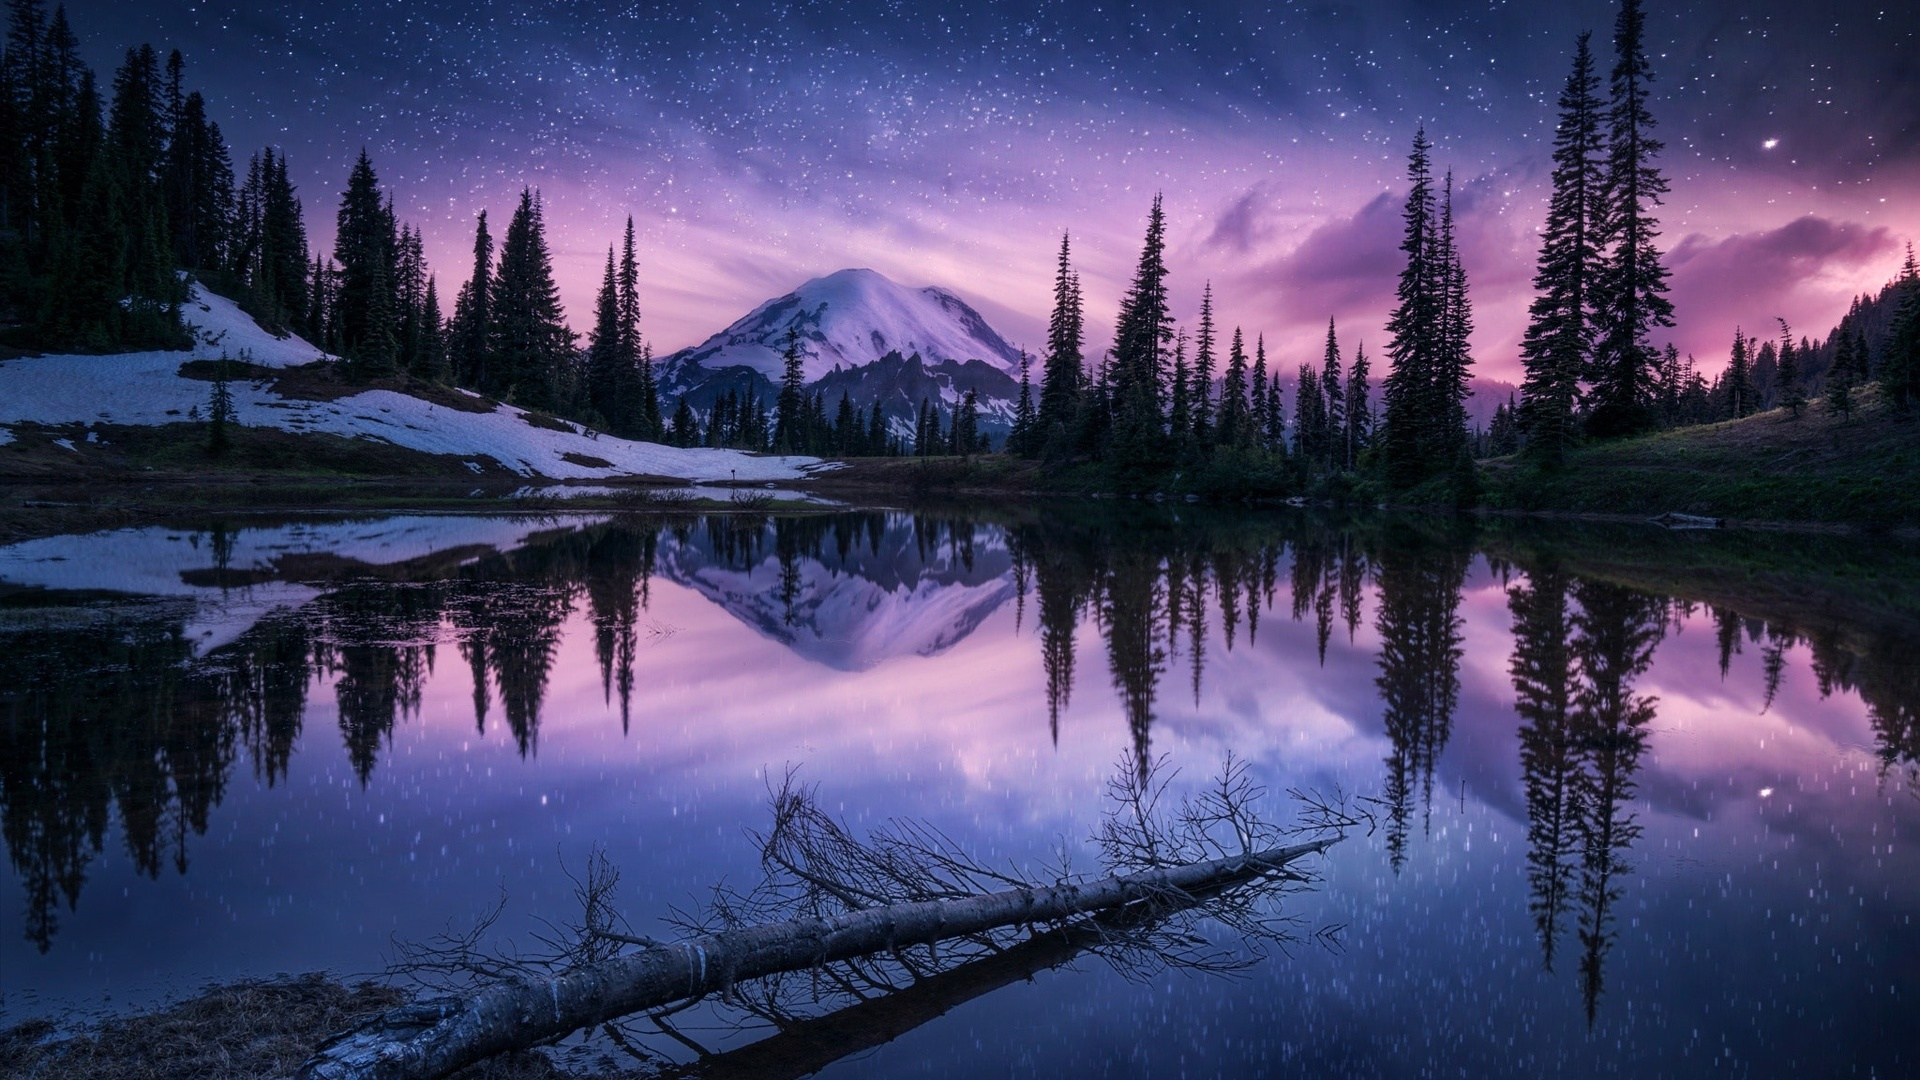 1920x1080 Lake Nature Night Reflection Laptop Full Hd 1080p Hd 4k Wallpapers Images Backgrounds Photos And Pictures